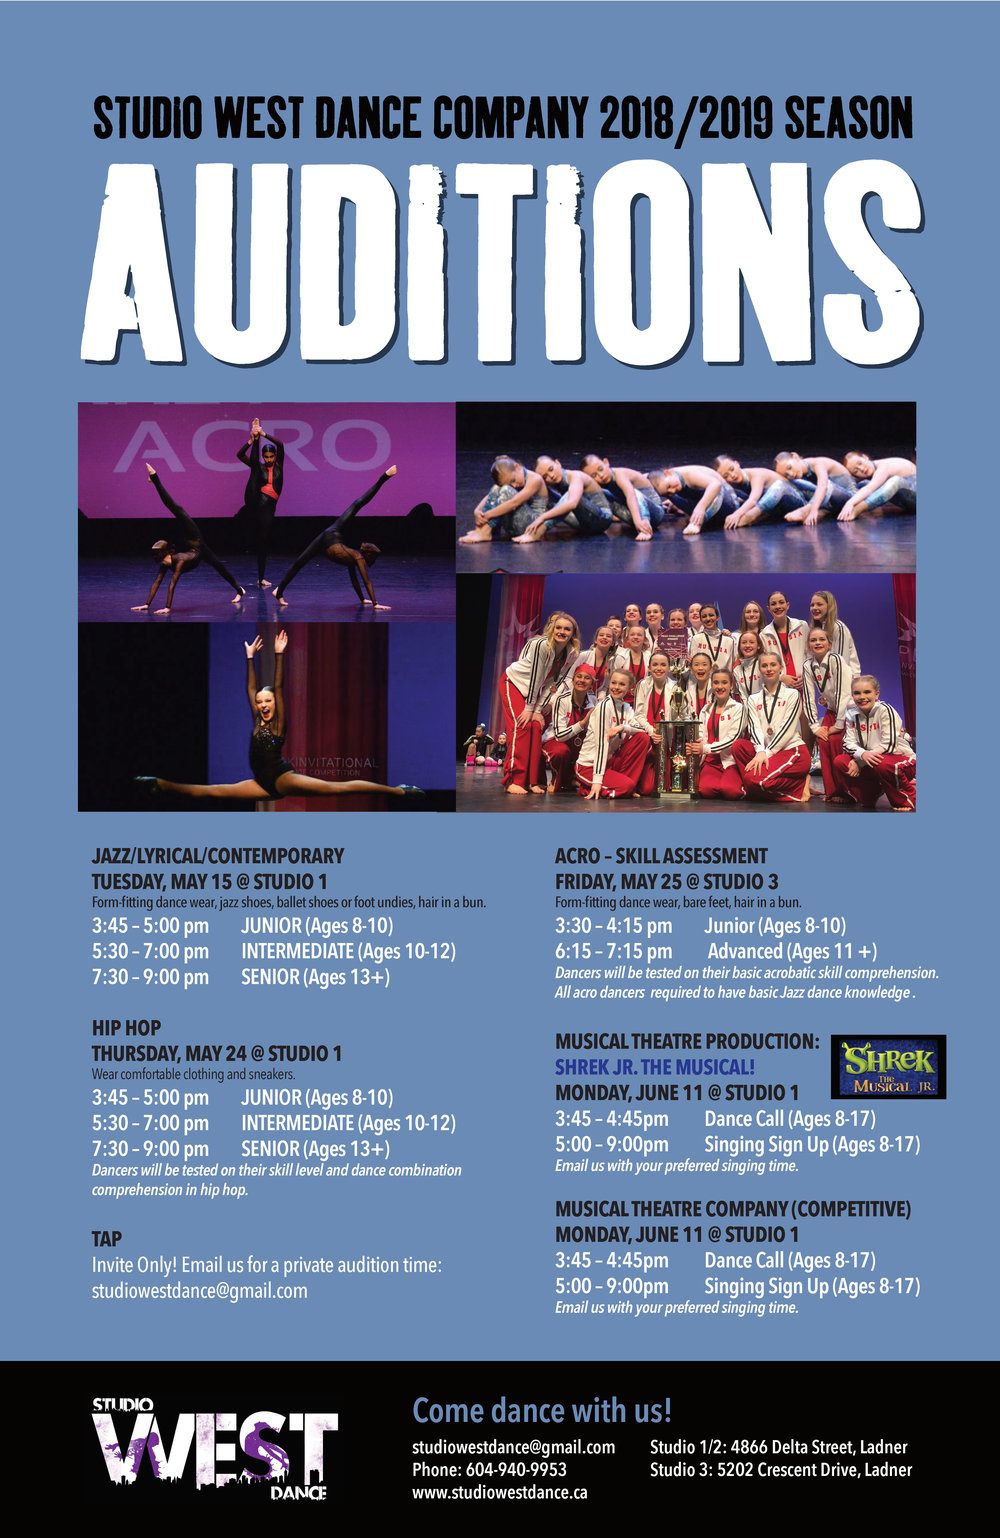 SWD_Poster_Auditions_2018.jpg